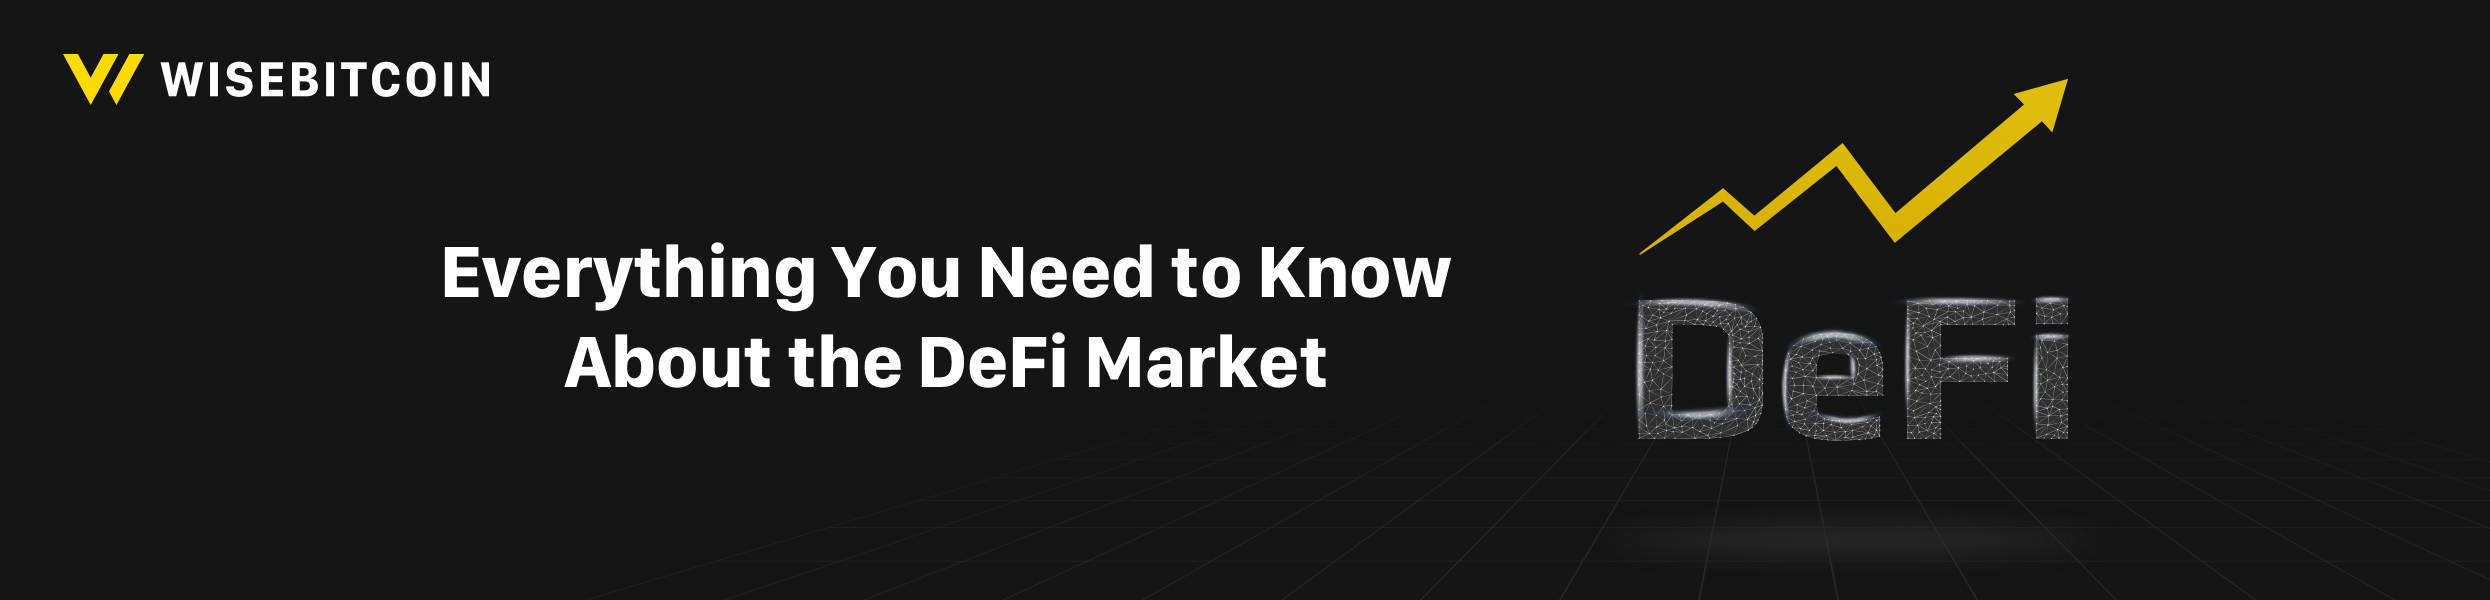 all you need to know about defi blog banner